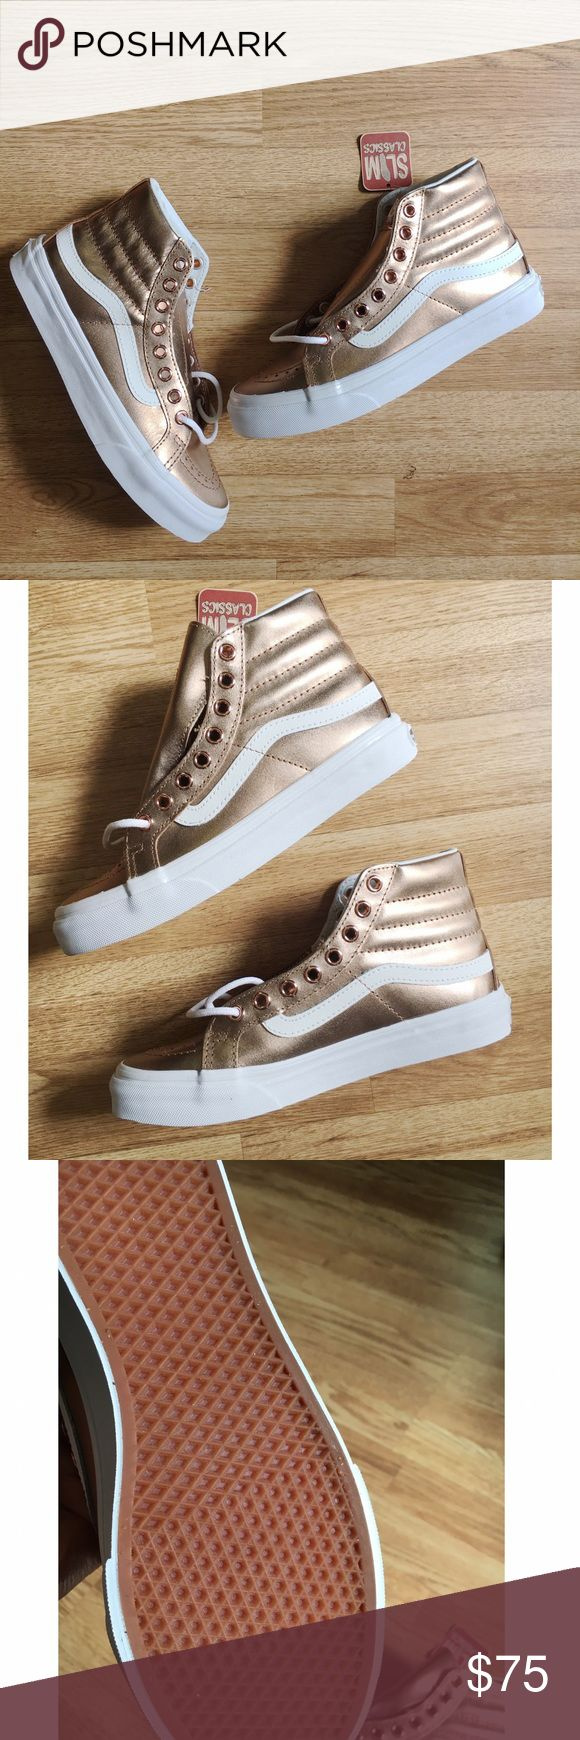 Vans Women's Sk8 Hi Slim Metallic Sneaker Vans Sk8-Hi Slim, a slimmed down version of the legendary Vans lace-up high top, features metallic leather uppers, padded collars for support and flexibility, and signature rubber waffle outsoles. NWT & never worn. ❌NO TRADES❌ Vans Shoes Sneakers